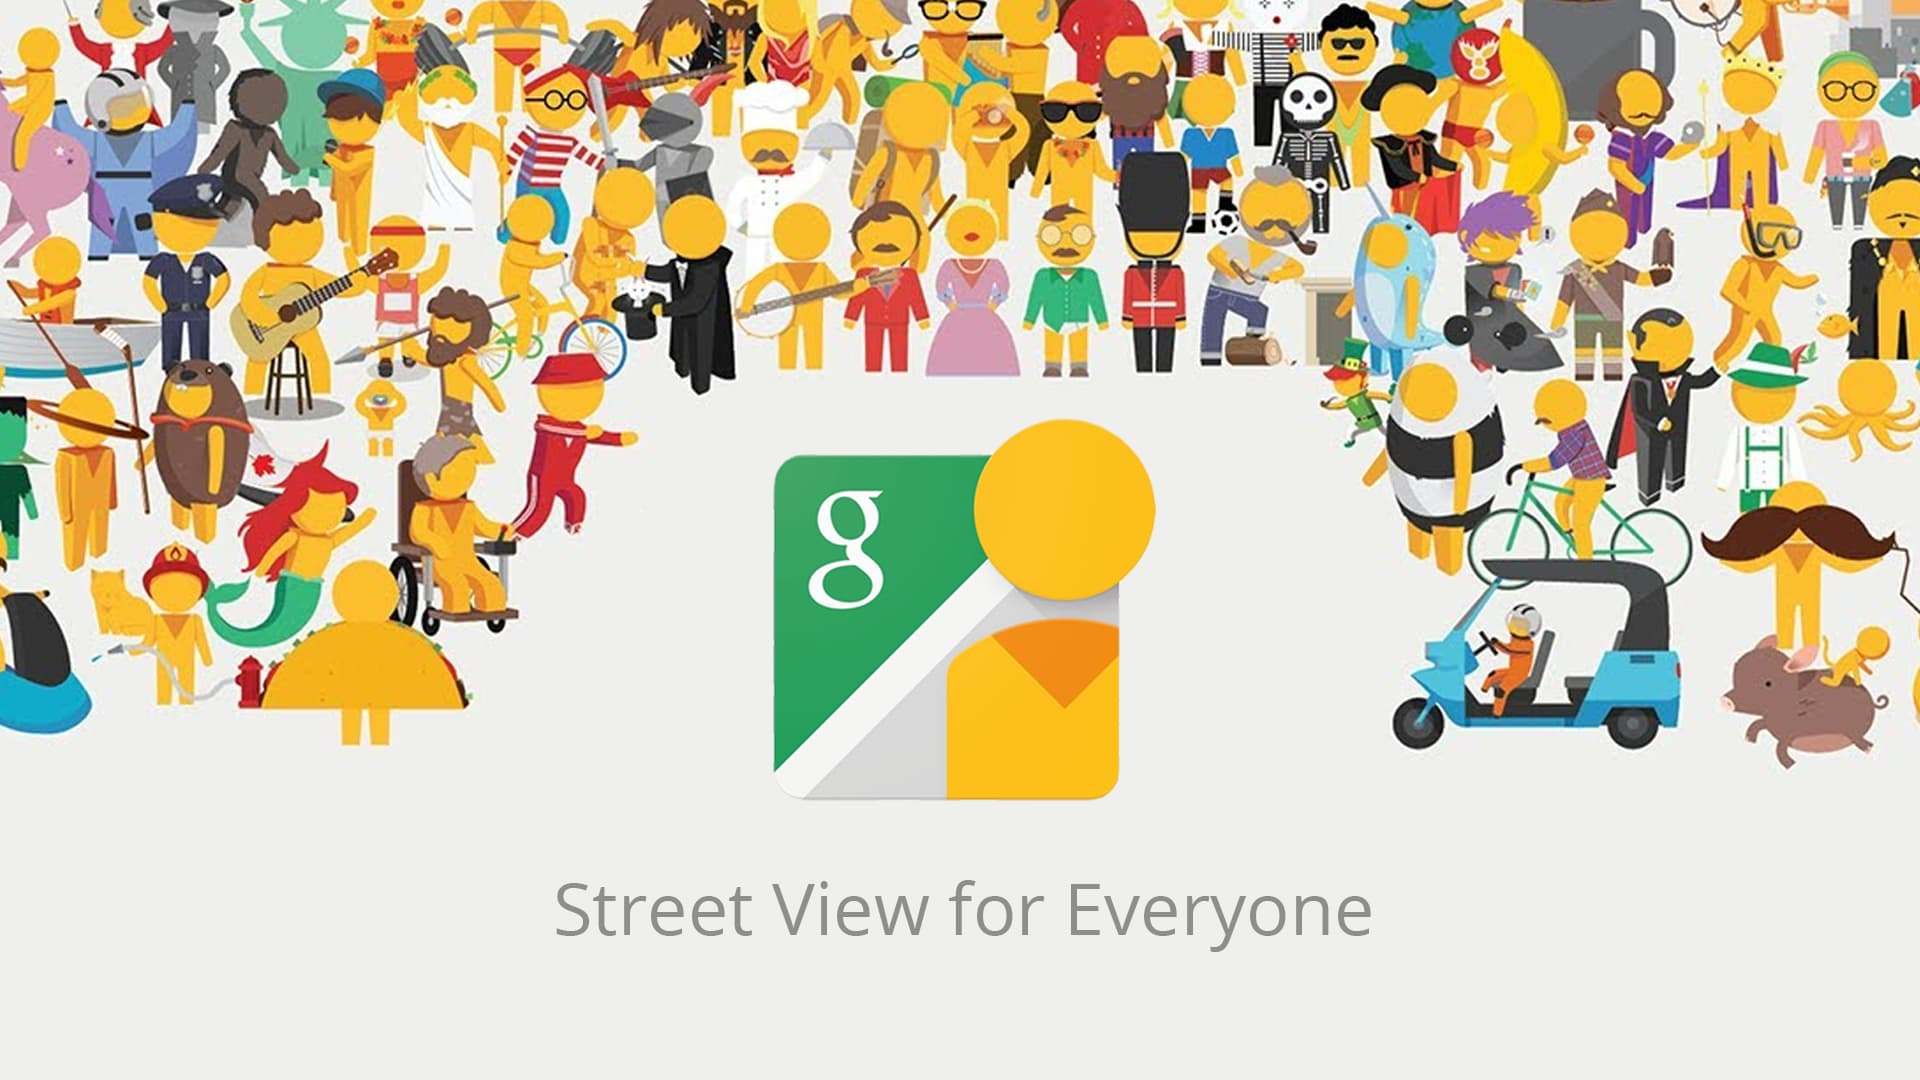 Google tests letting anyone contribute to Street View using only their phone